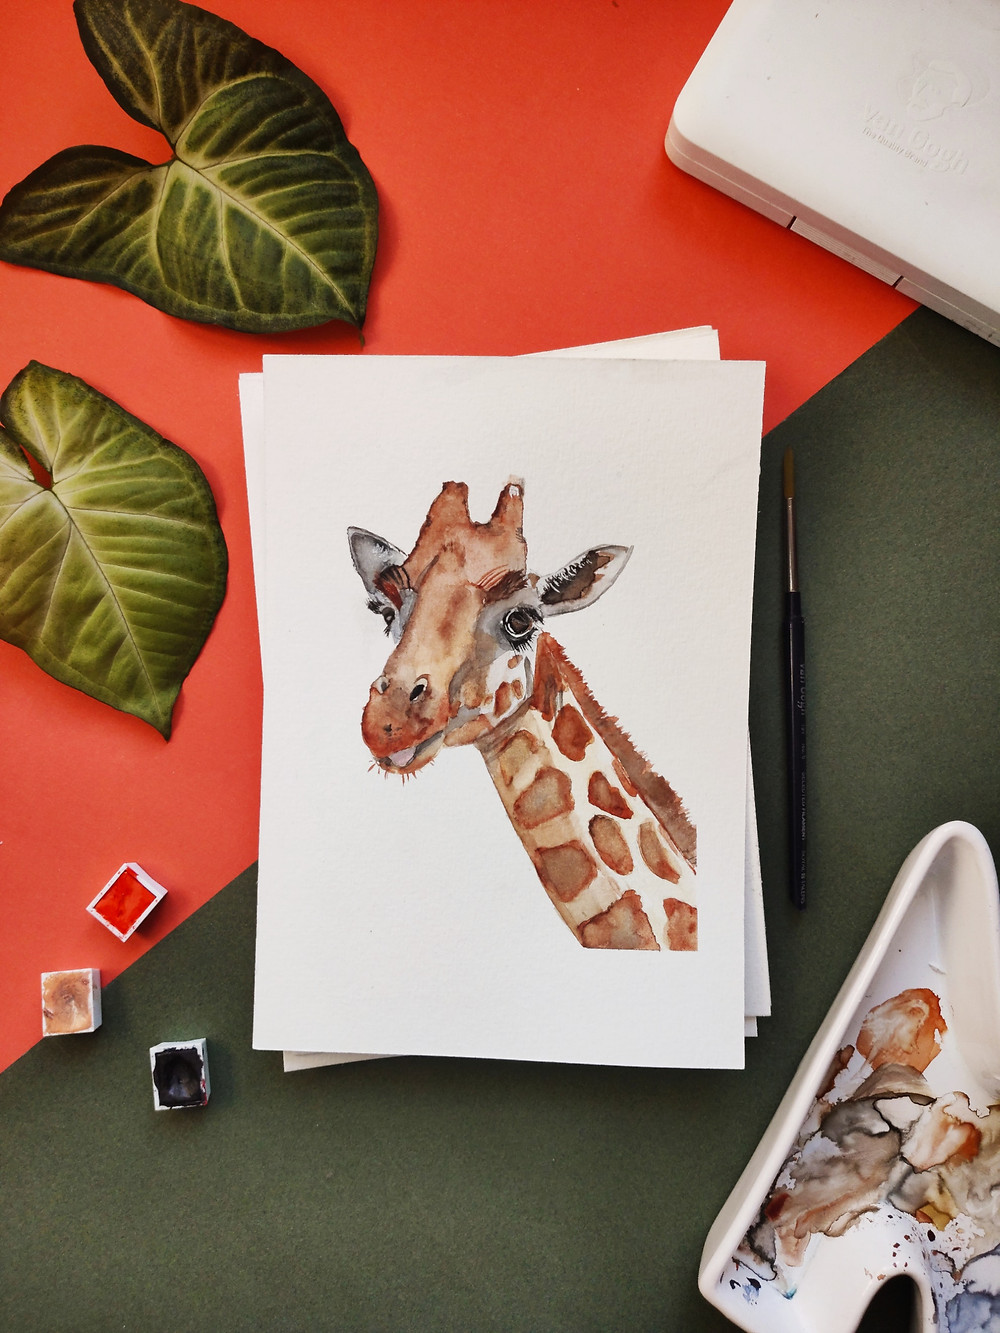 A newly made water color portrait of a giraffe is shown on a table with paint and green leaves.